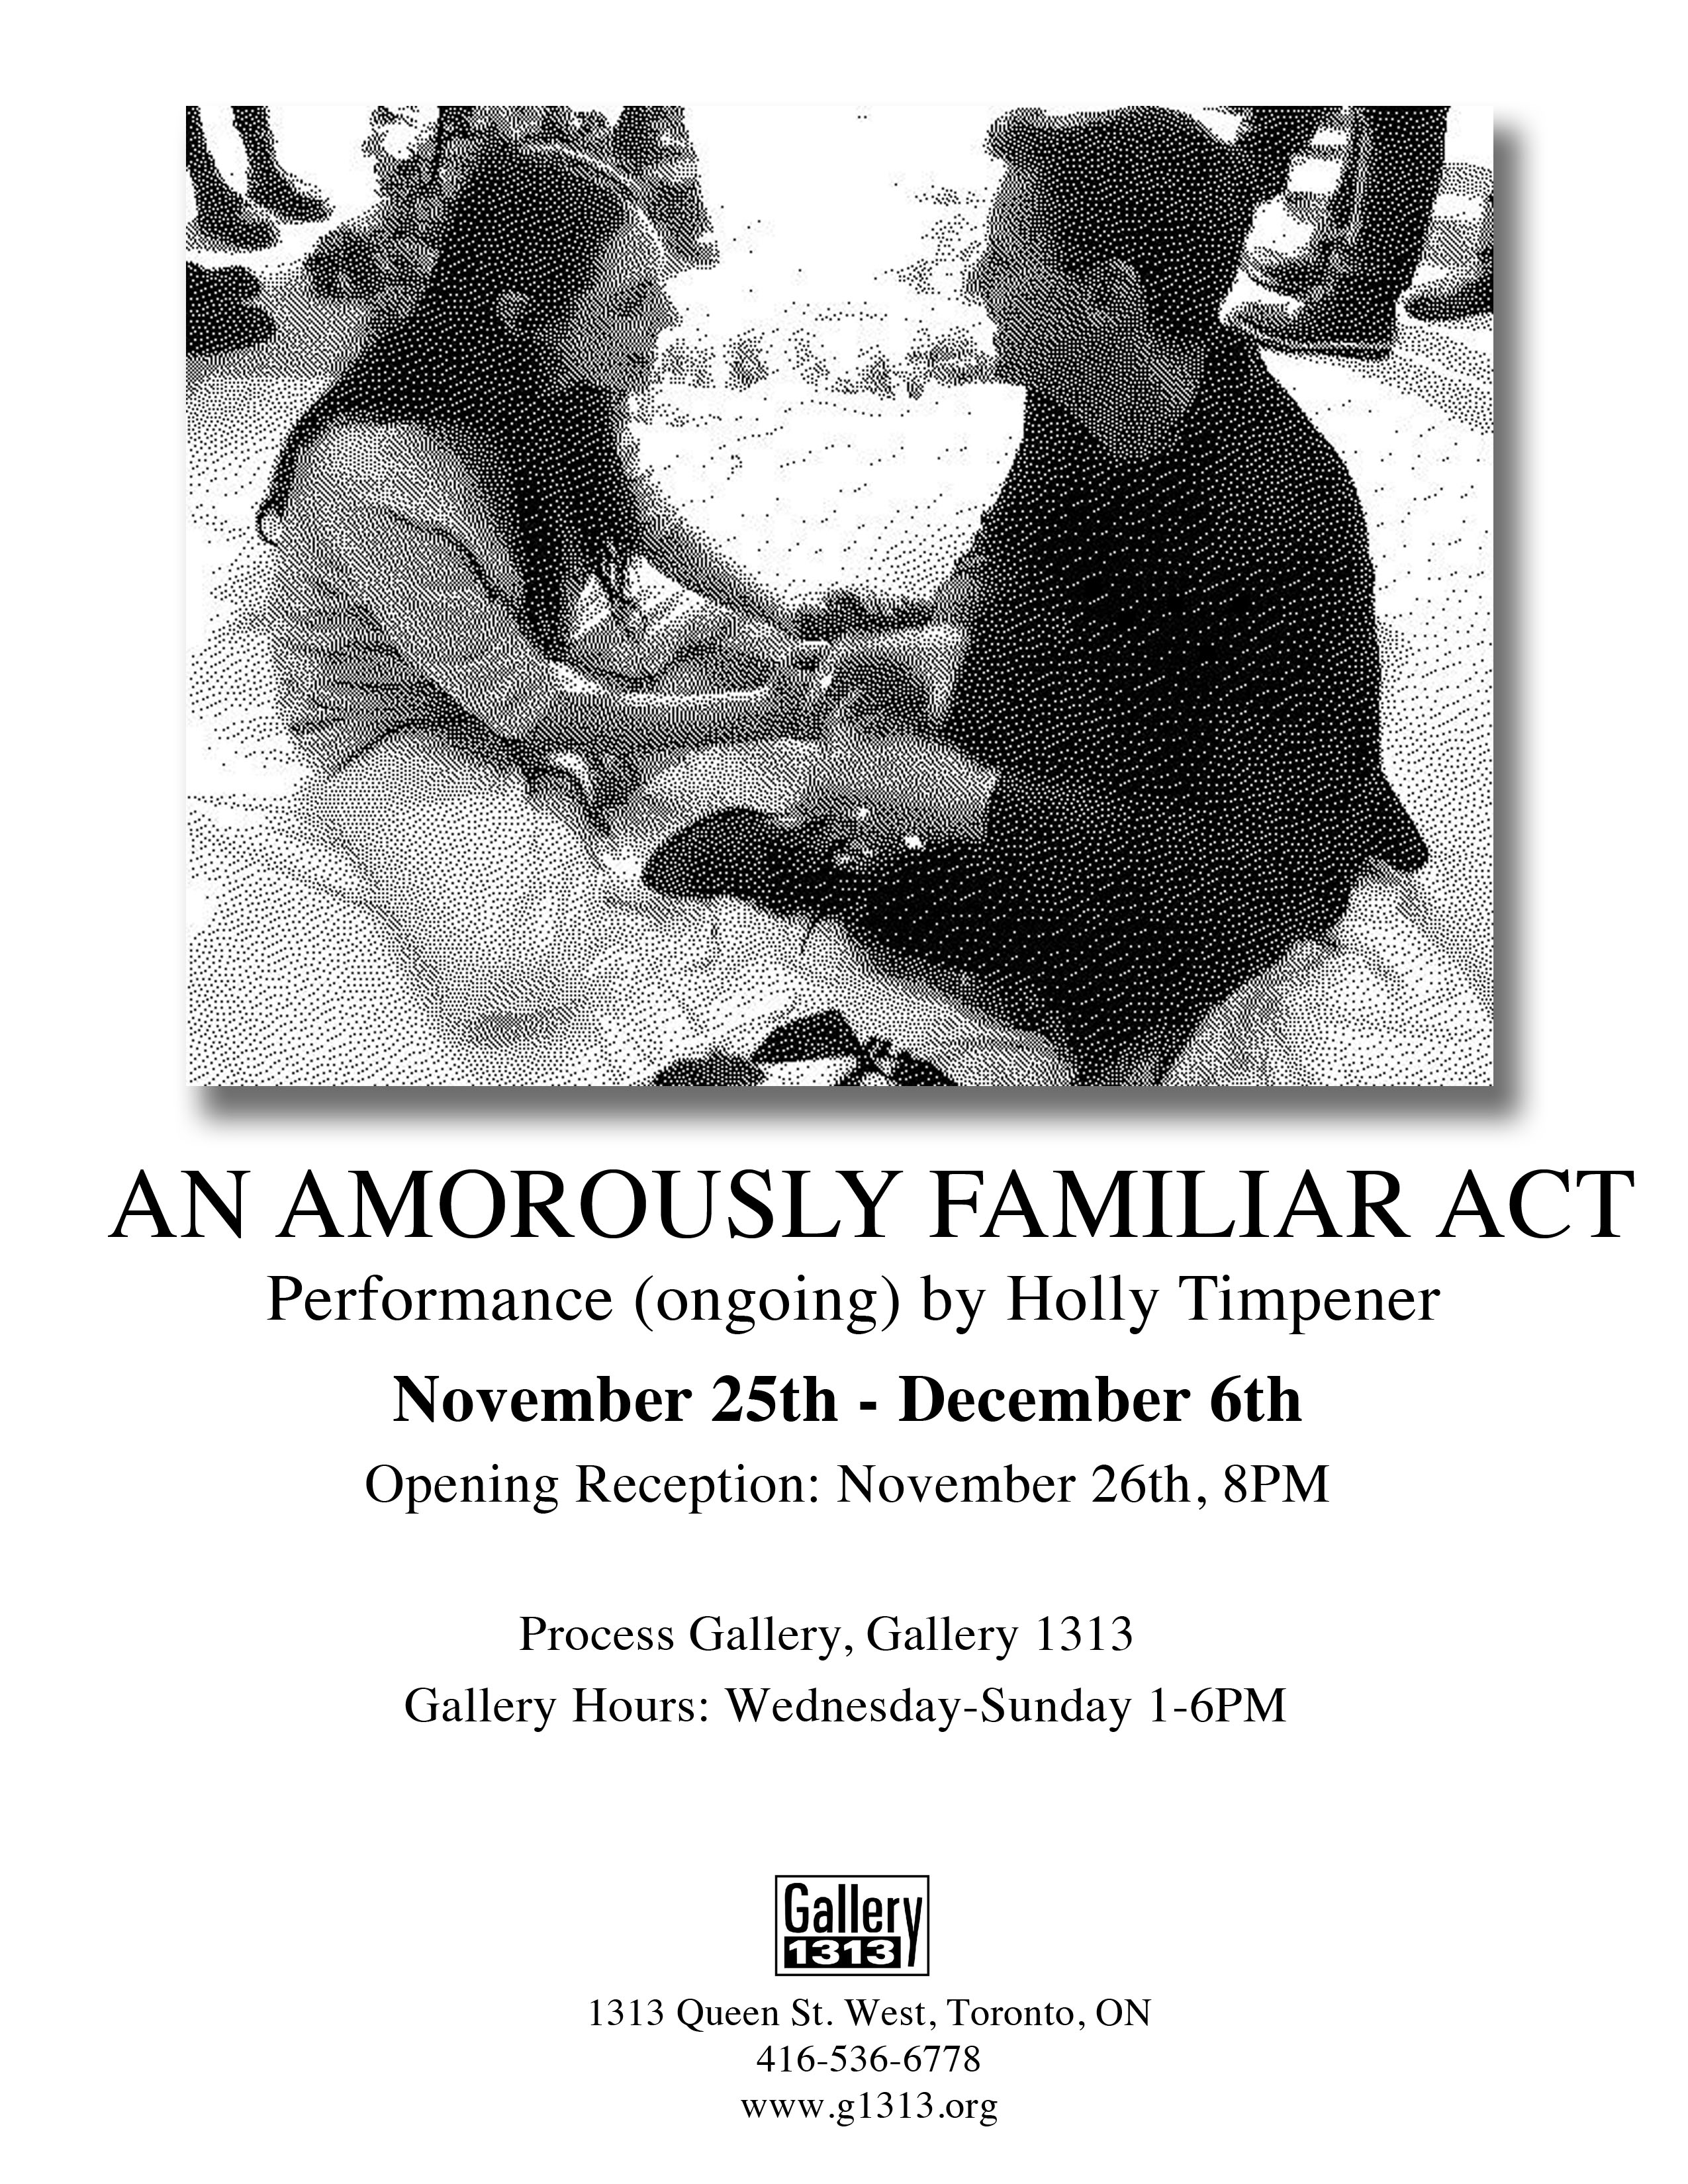 An Amorously Familiar Act by Holly Timpener